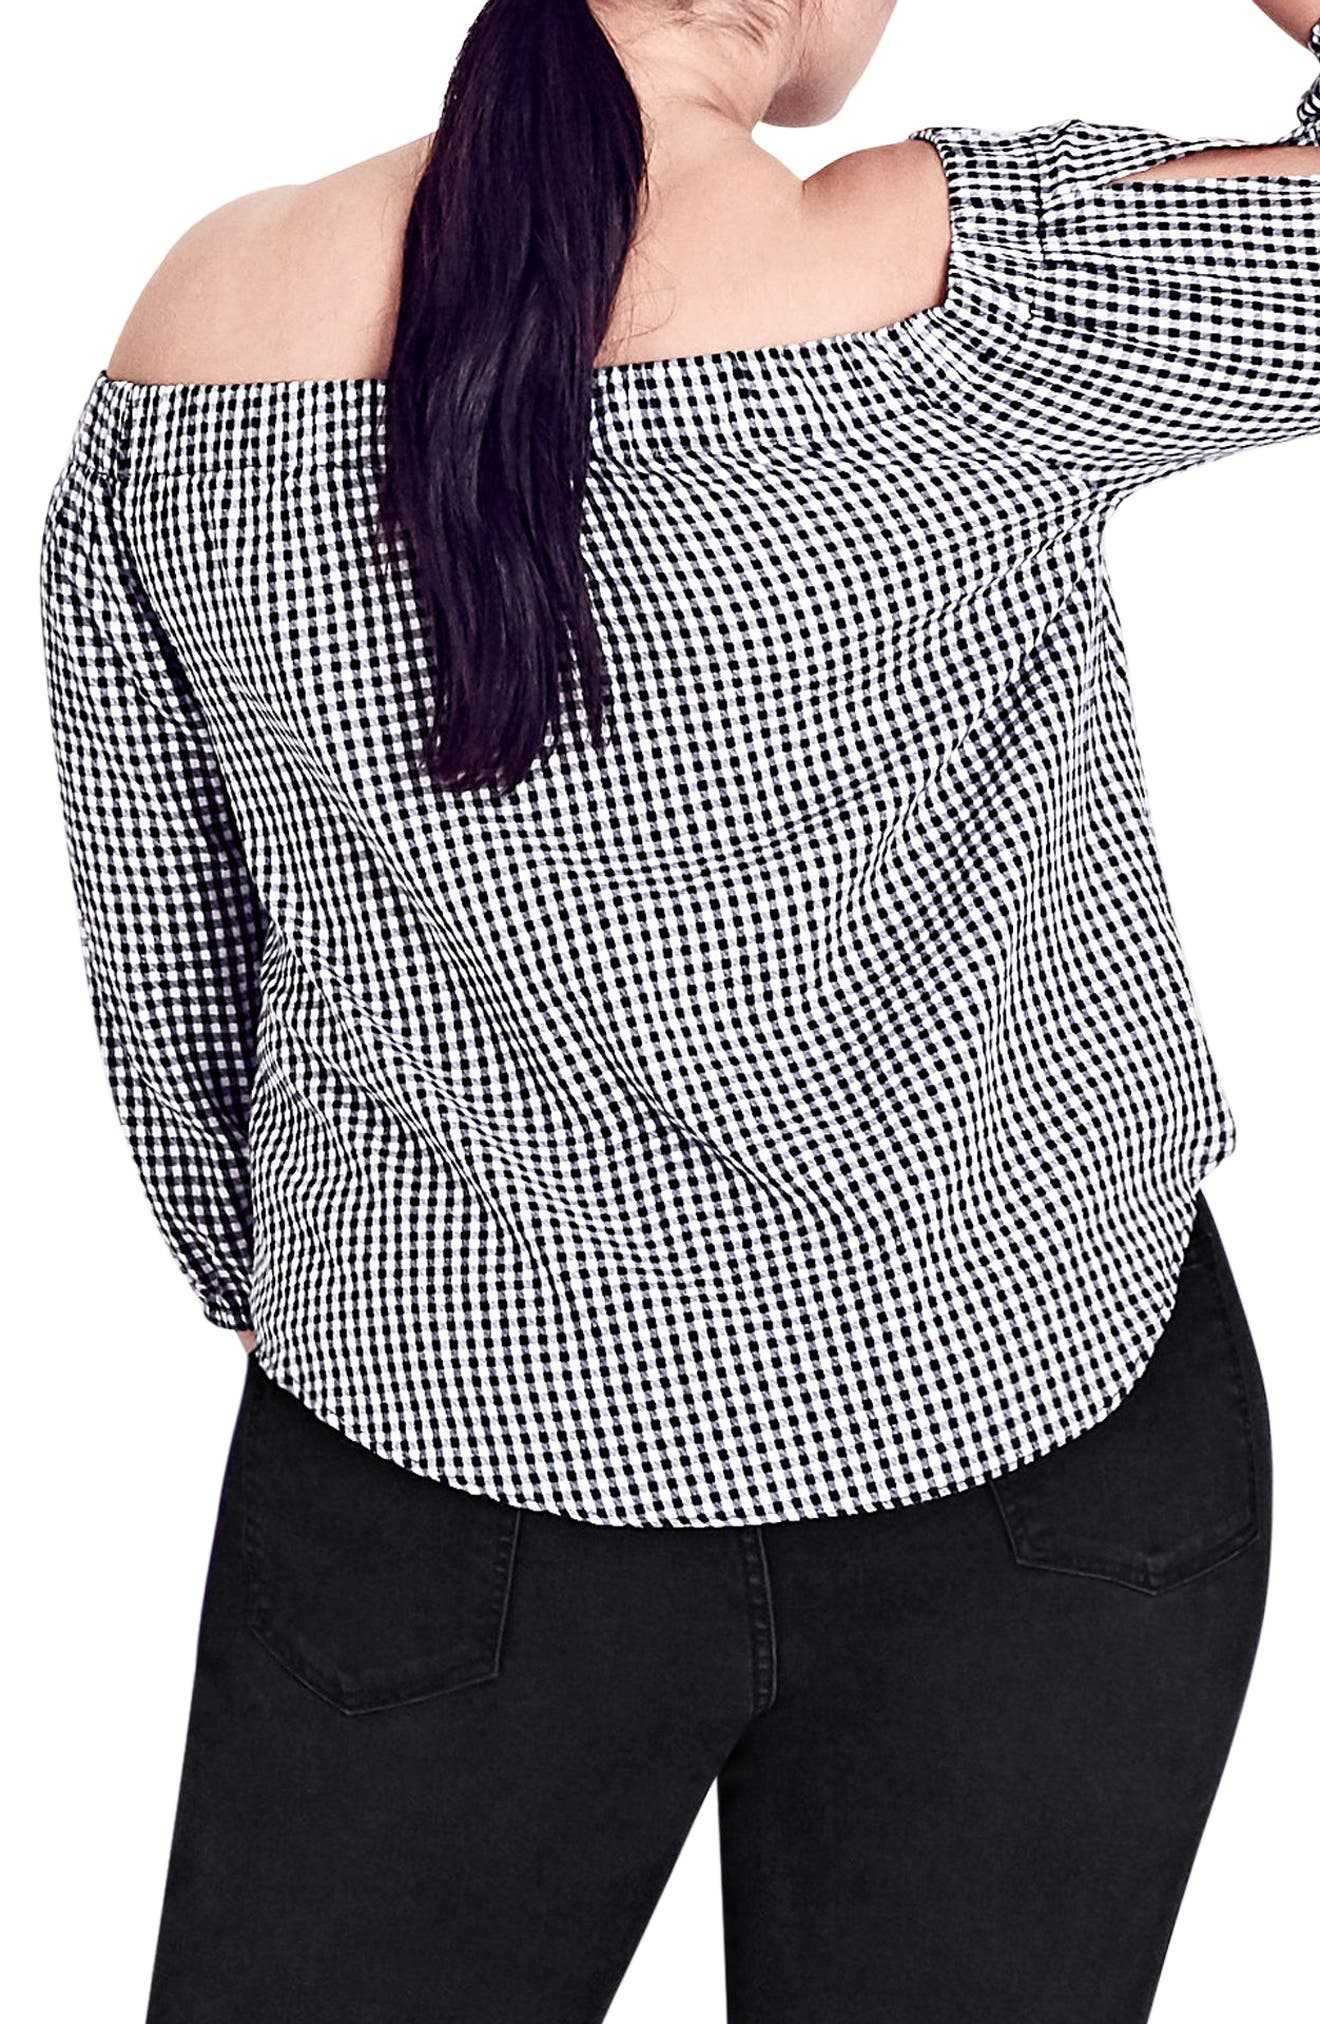 Gingham Off the Shoulder Top,                             Alternate thumbnail 2, color,                             BLACK / WHITE